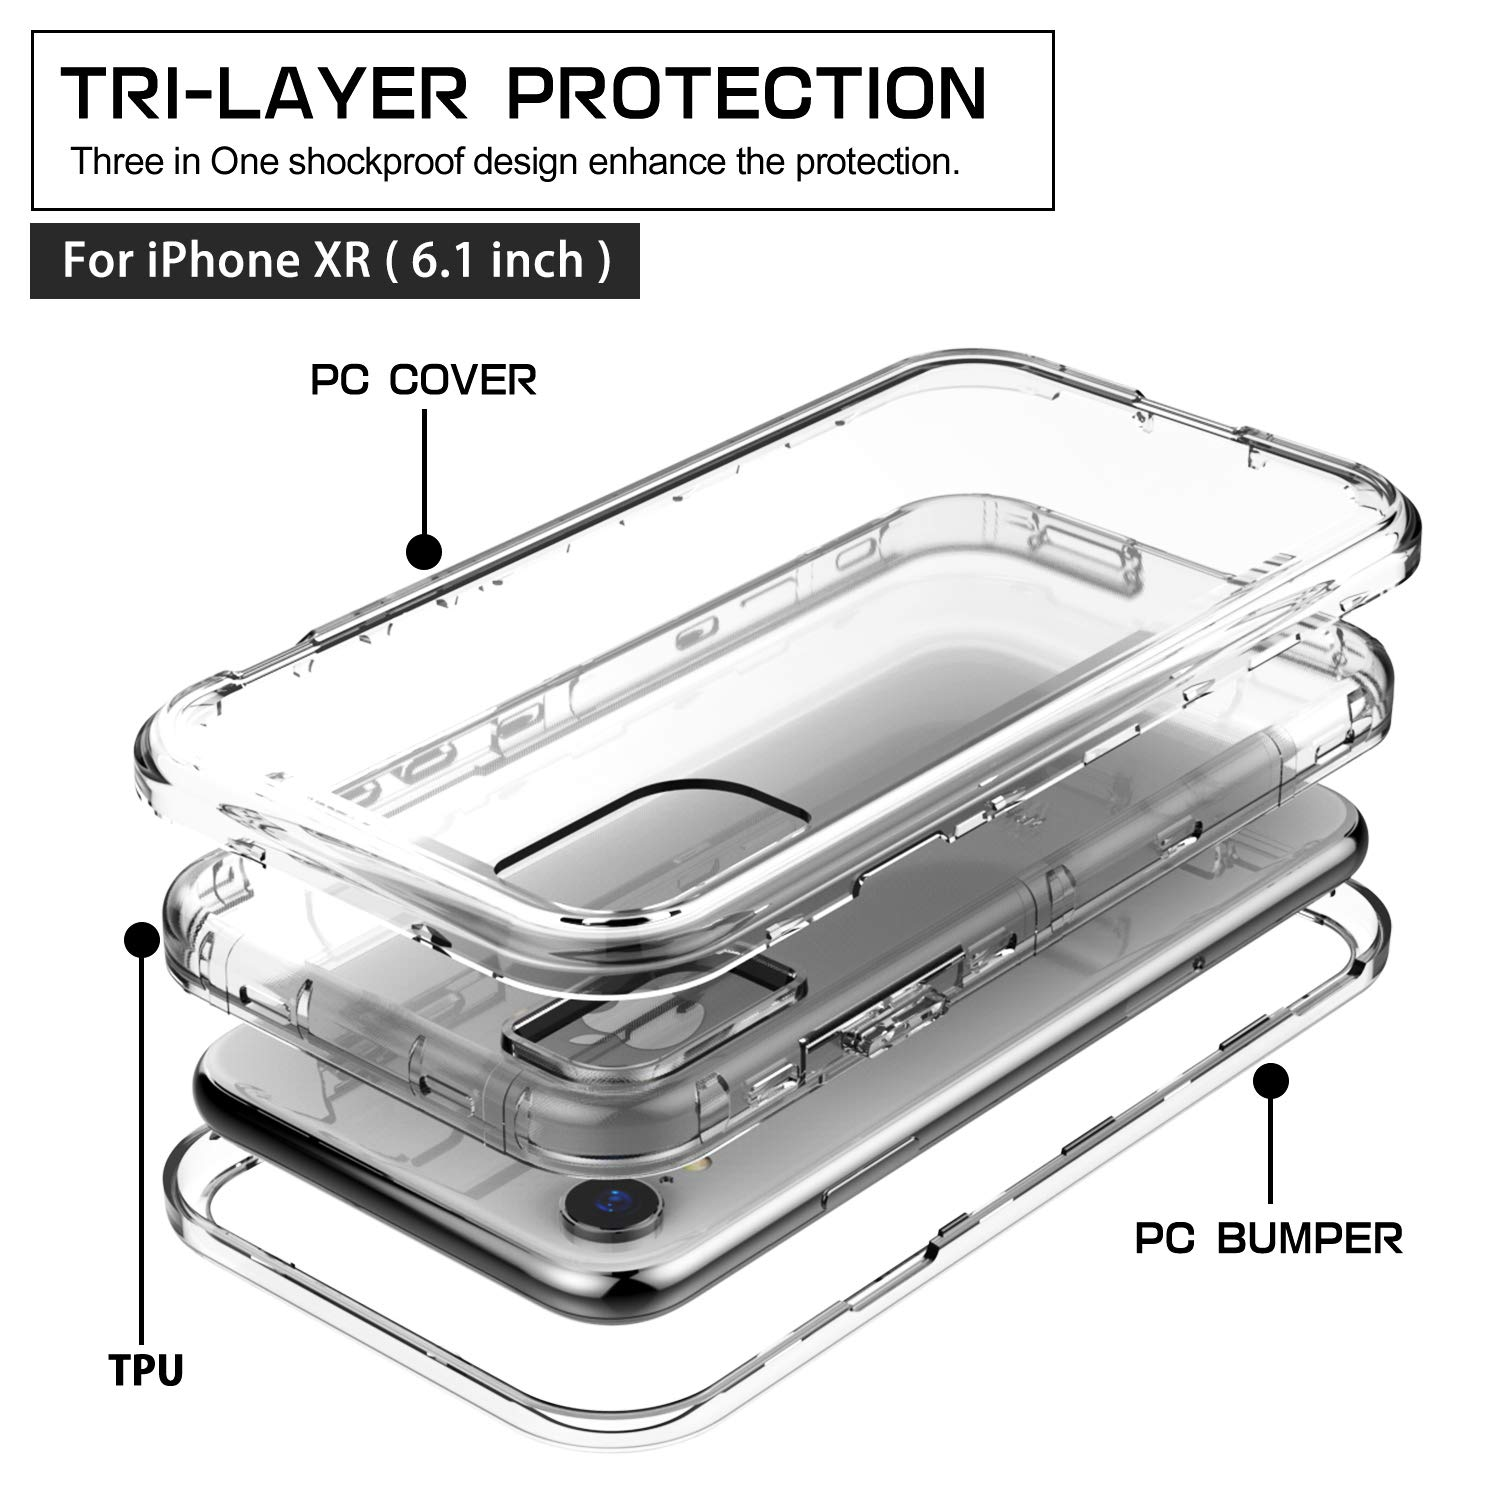 SKYLMW iPhone XR Case,Shockproof Three Layer Protection Hard Plastic & Soft TPU Sturdy Shockproof Armor High Impact Resistant Cover Case iPhone XR 2018(6.1 inch),Clear